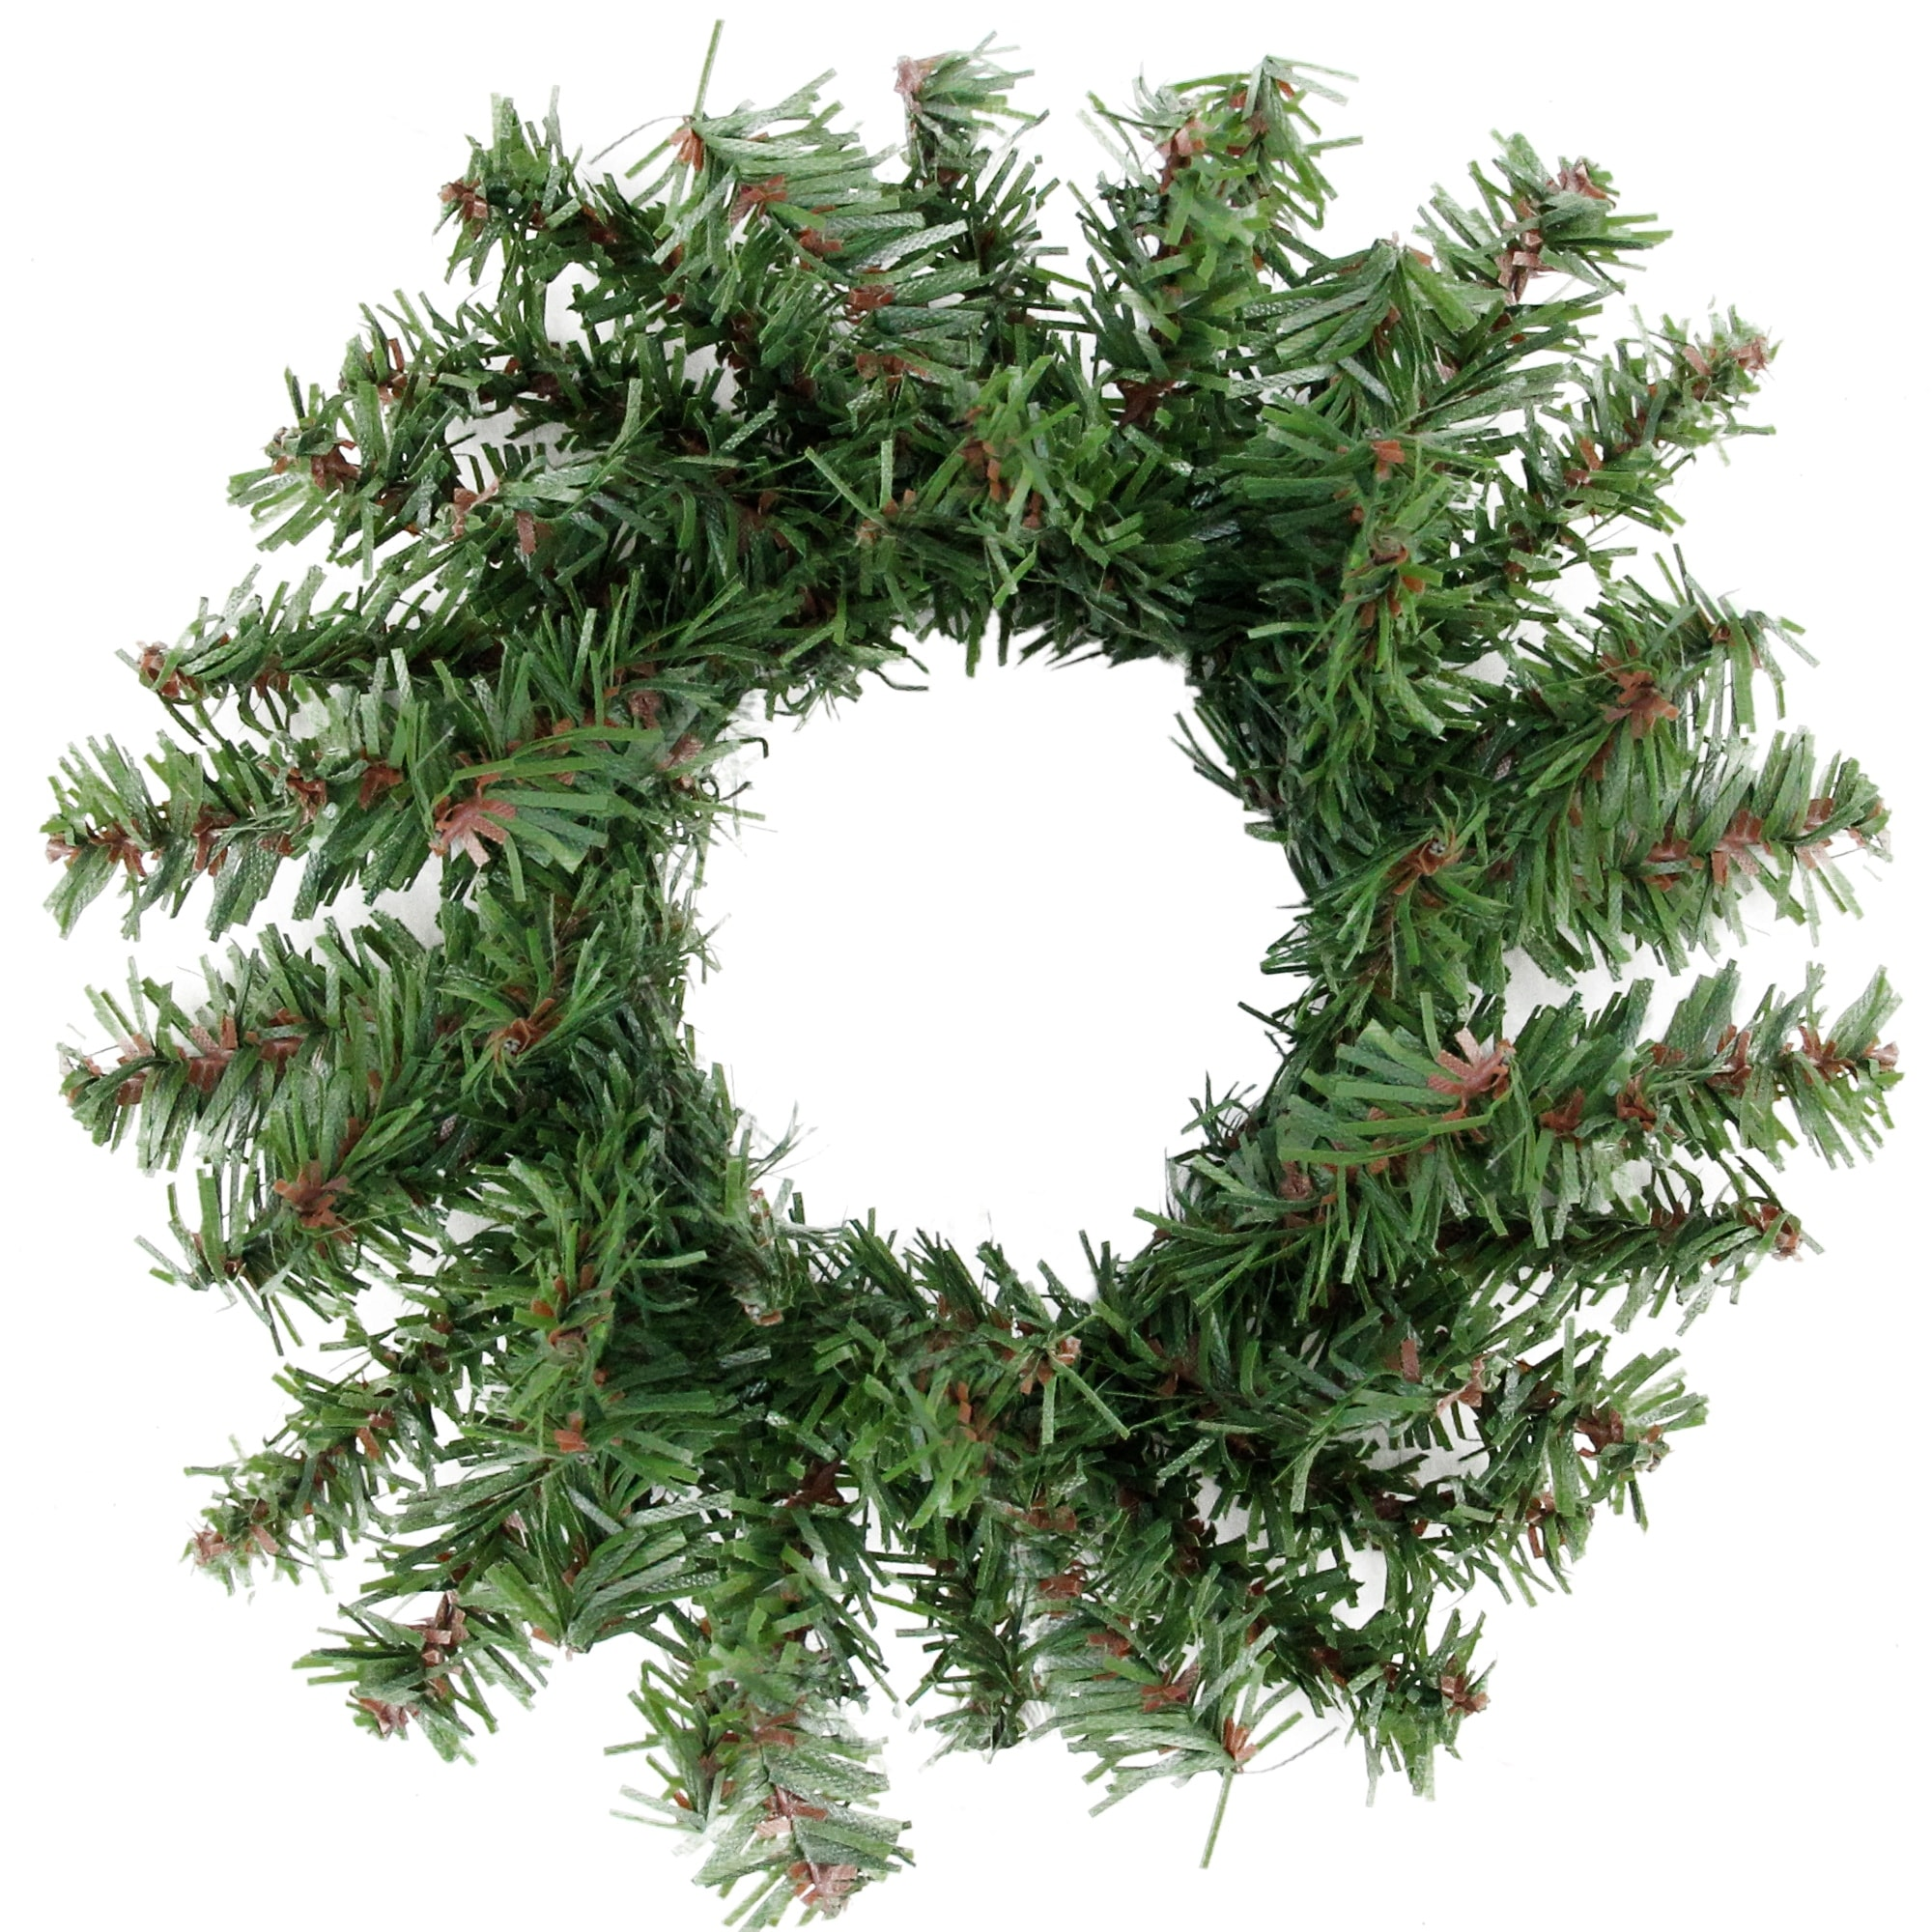 Bulk Christmas Garland.Buy Christmas Wreaths Garlands Online At Overstock Our